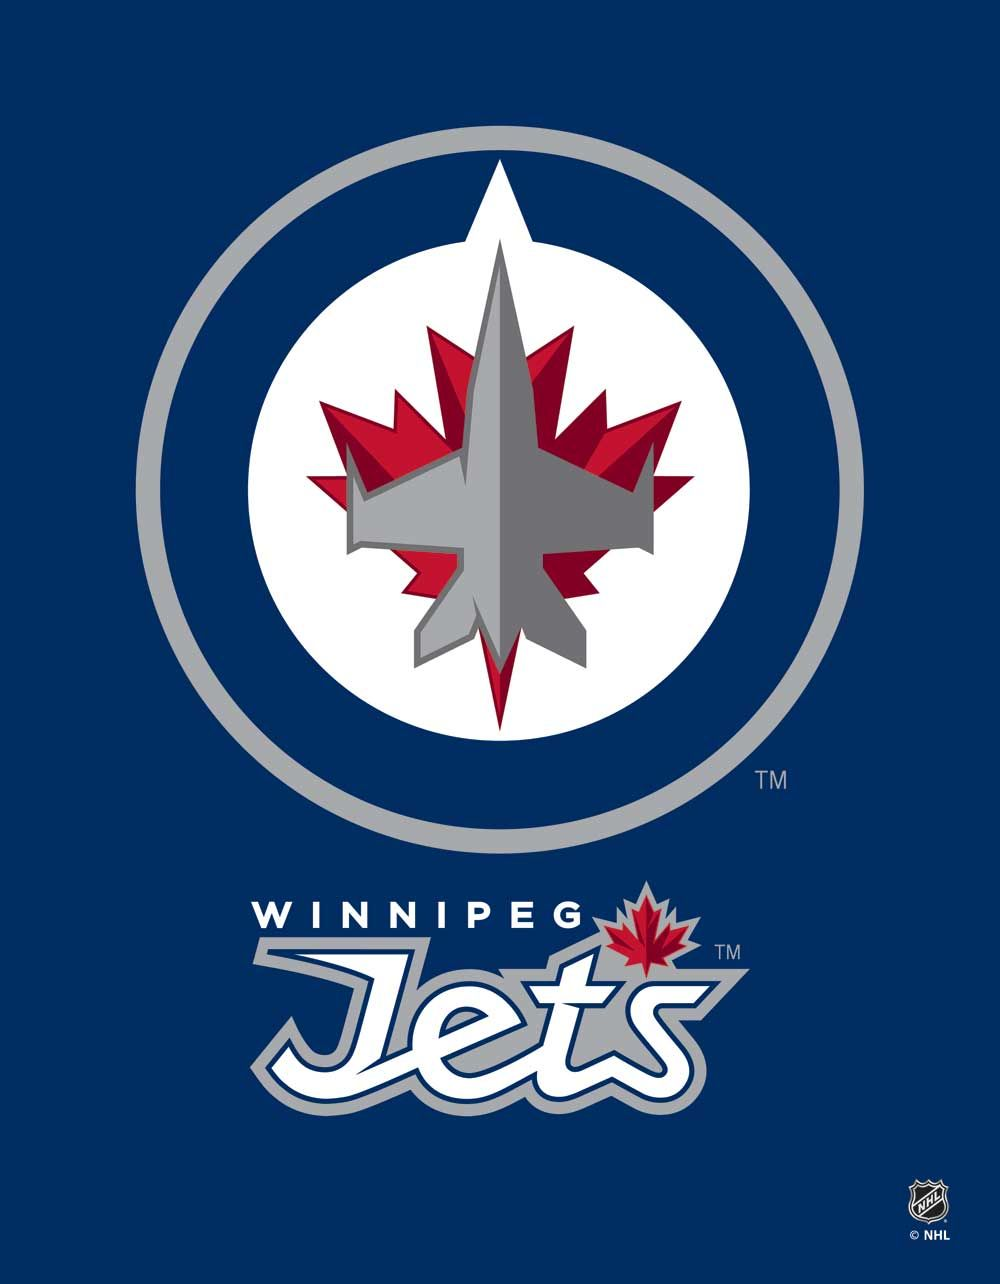 Hockey Logos Winnipeg Jets Logo Nhl Jets Hockey Nhl Logos Hockey Logos